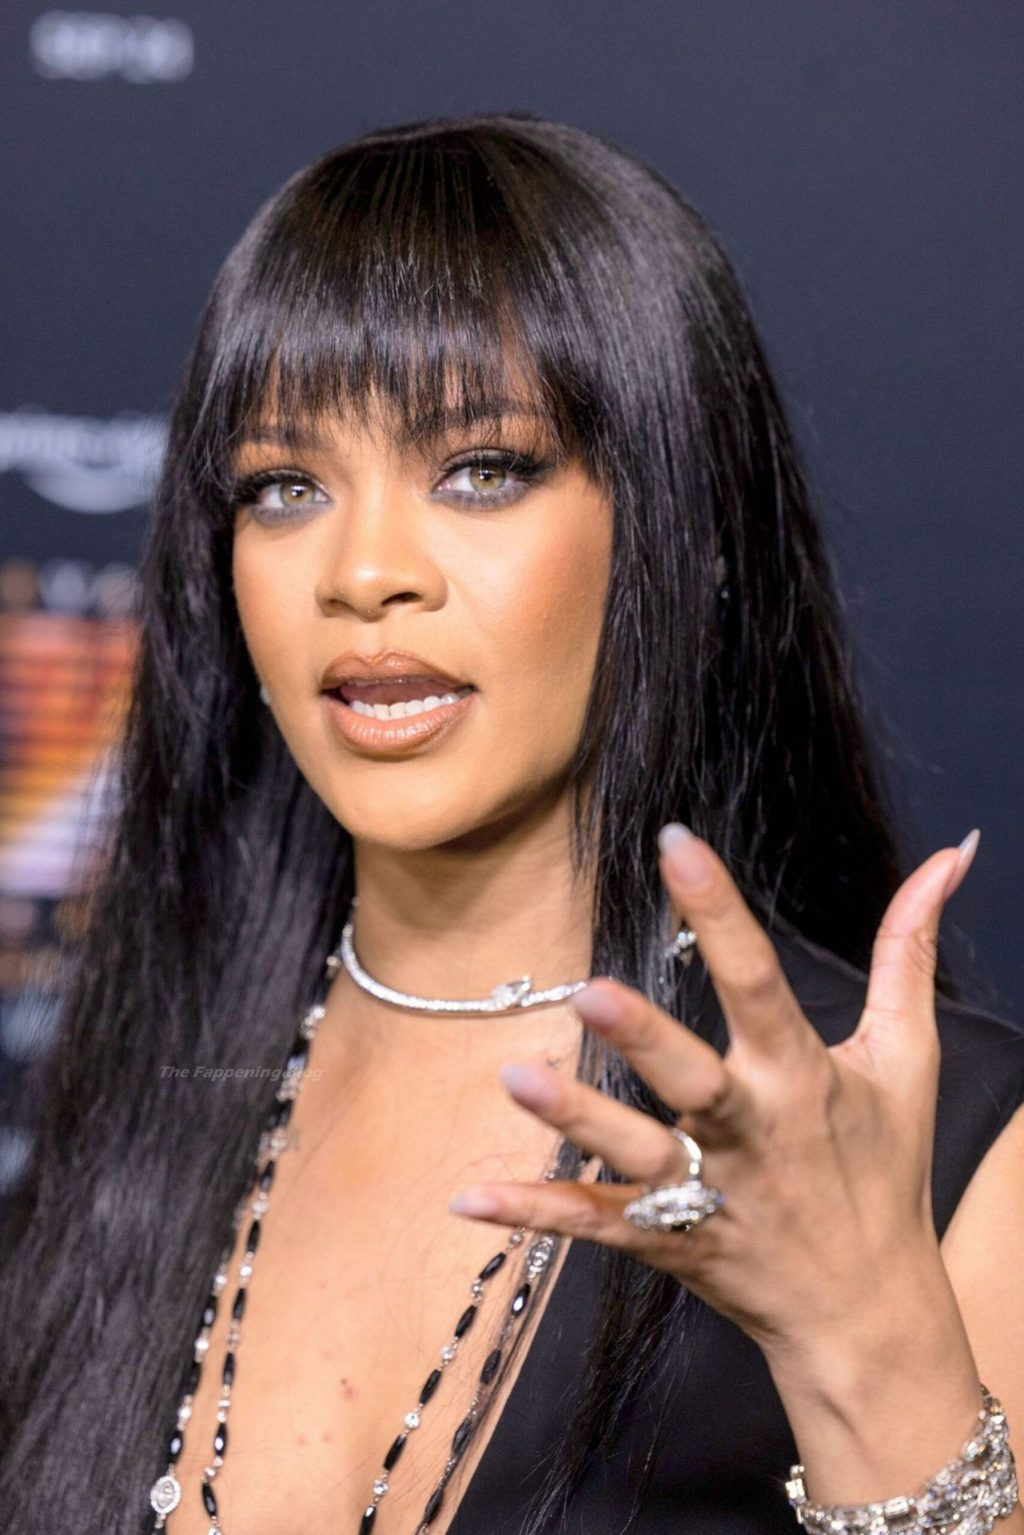 Rihanna Sets Pulses Racing in Sheer Lace Shorts and Stockings at Savage X Fenty Show Premiere in NYC (29 Photos)